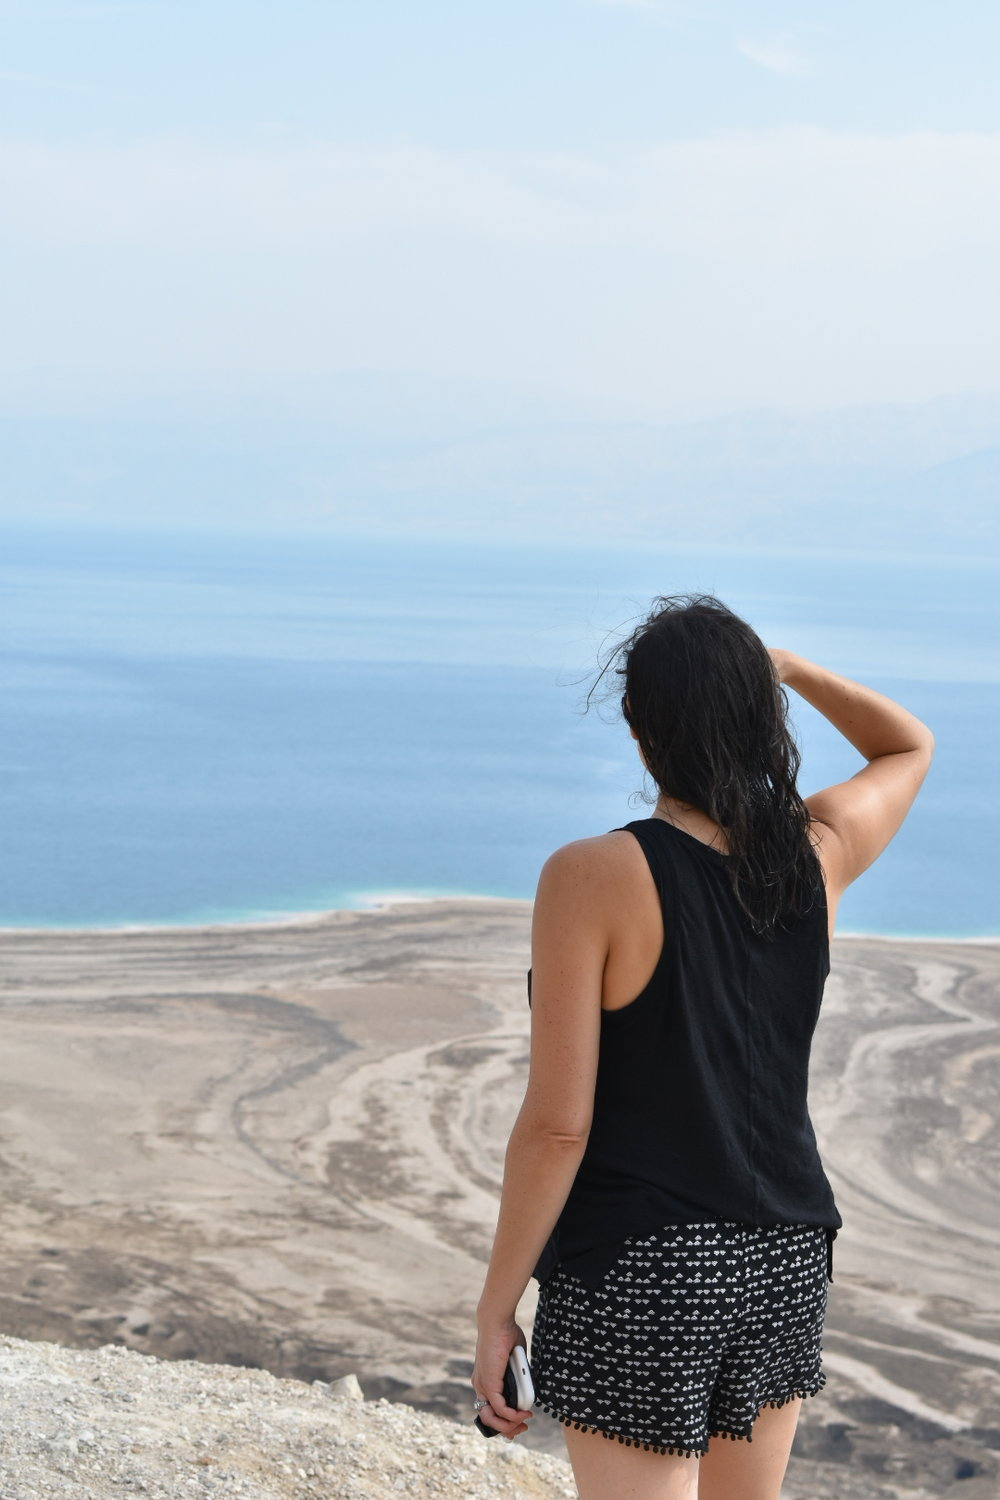 touring-the-dead-sea-israel